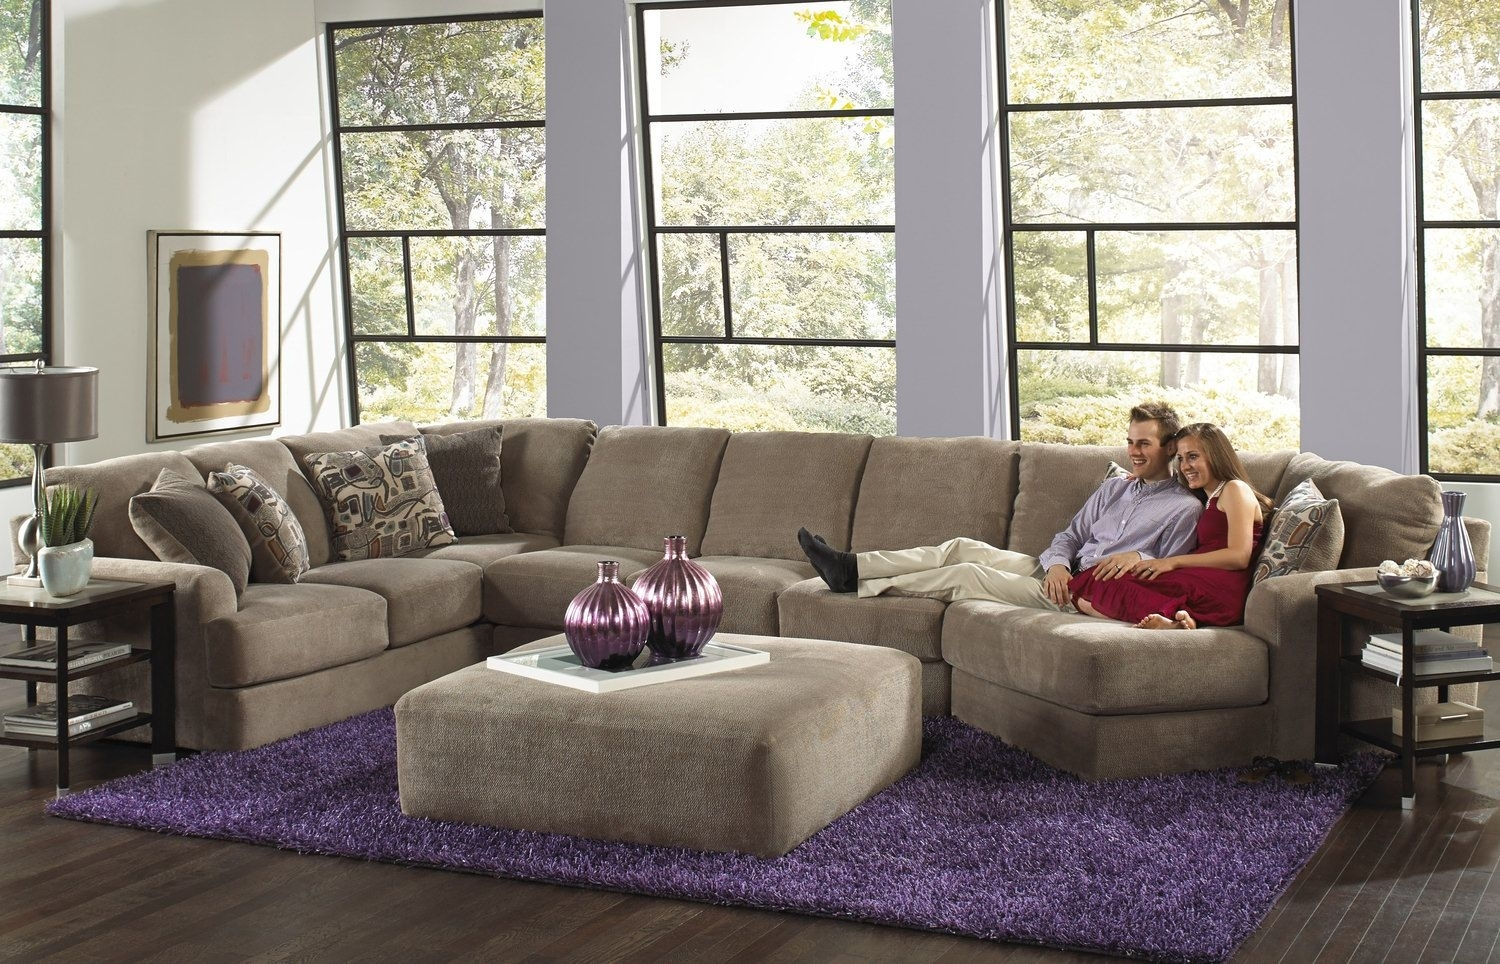 Regal 3 Piece Modular Sectional | Pinterest | Cocktail Ottoman Within Burton Leather 3 Piece Sectionals With Ottoman (View 15 of 25)